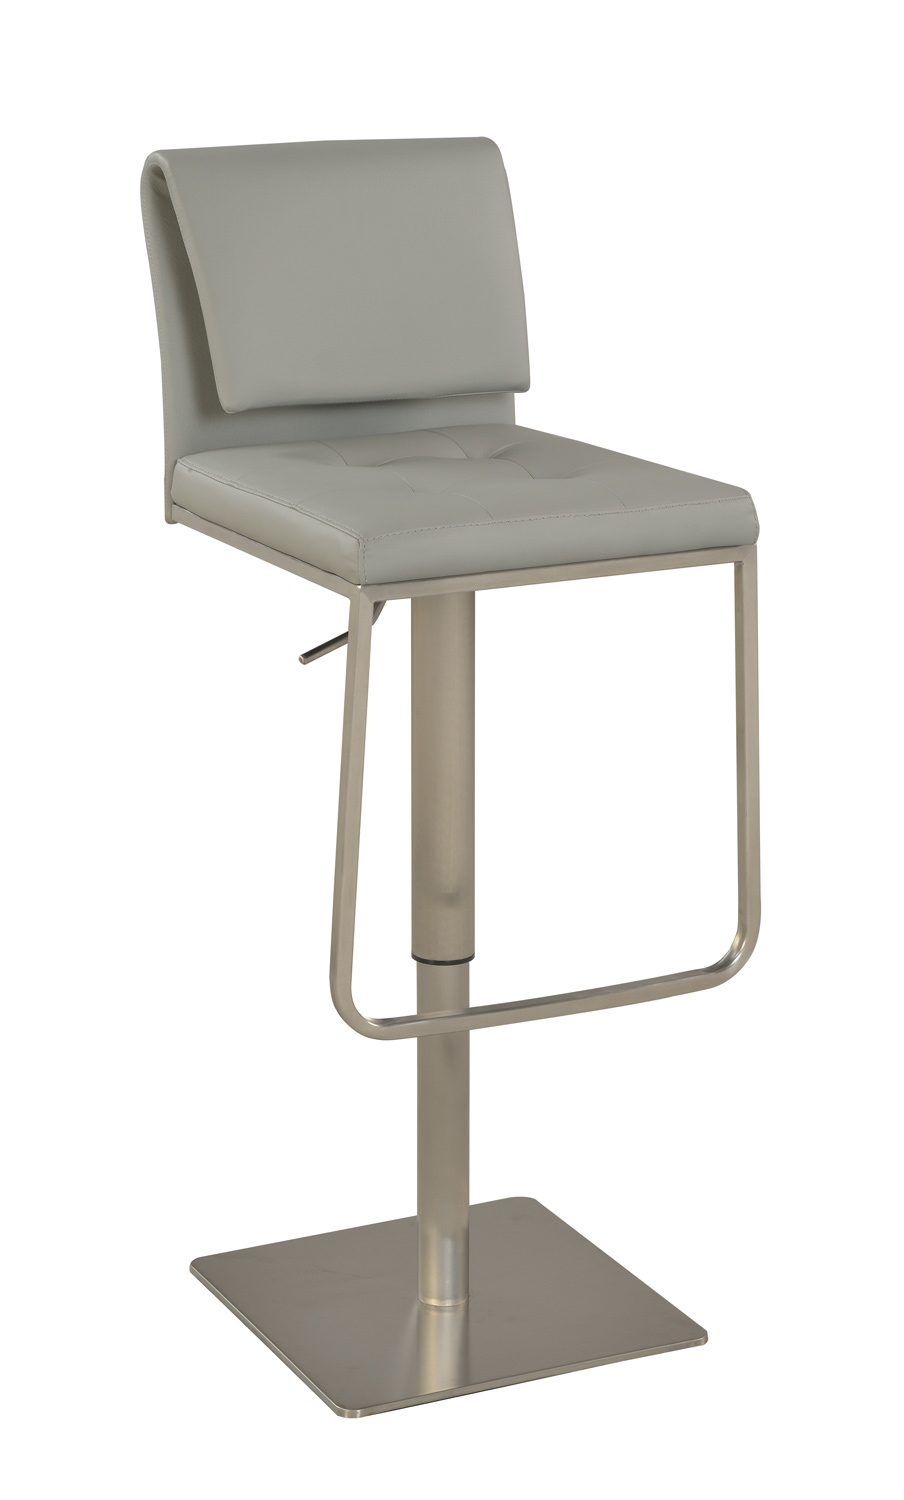 Chintaly Imports 0893 Pneumatic Gas Lift Adjustable Height Stool - Brushed Stainless